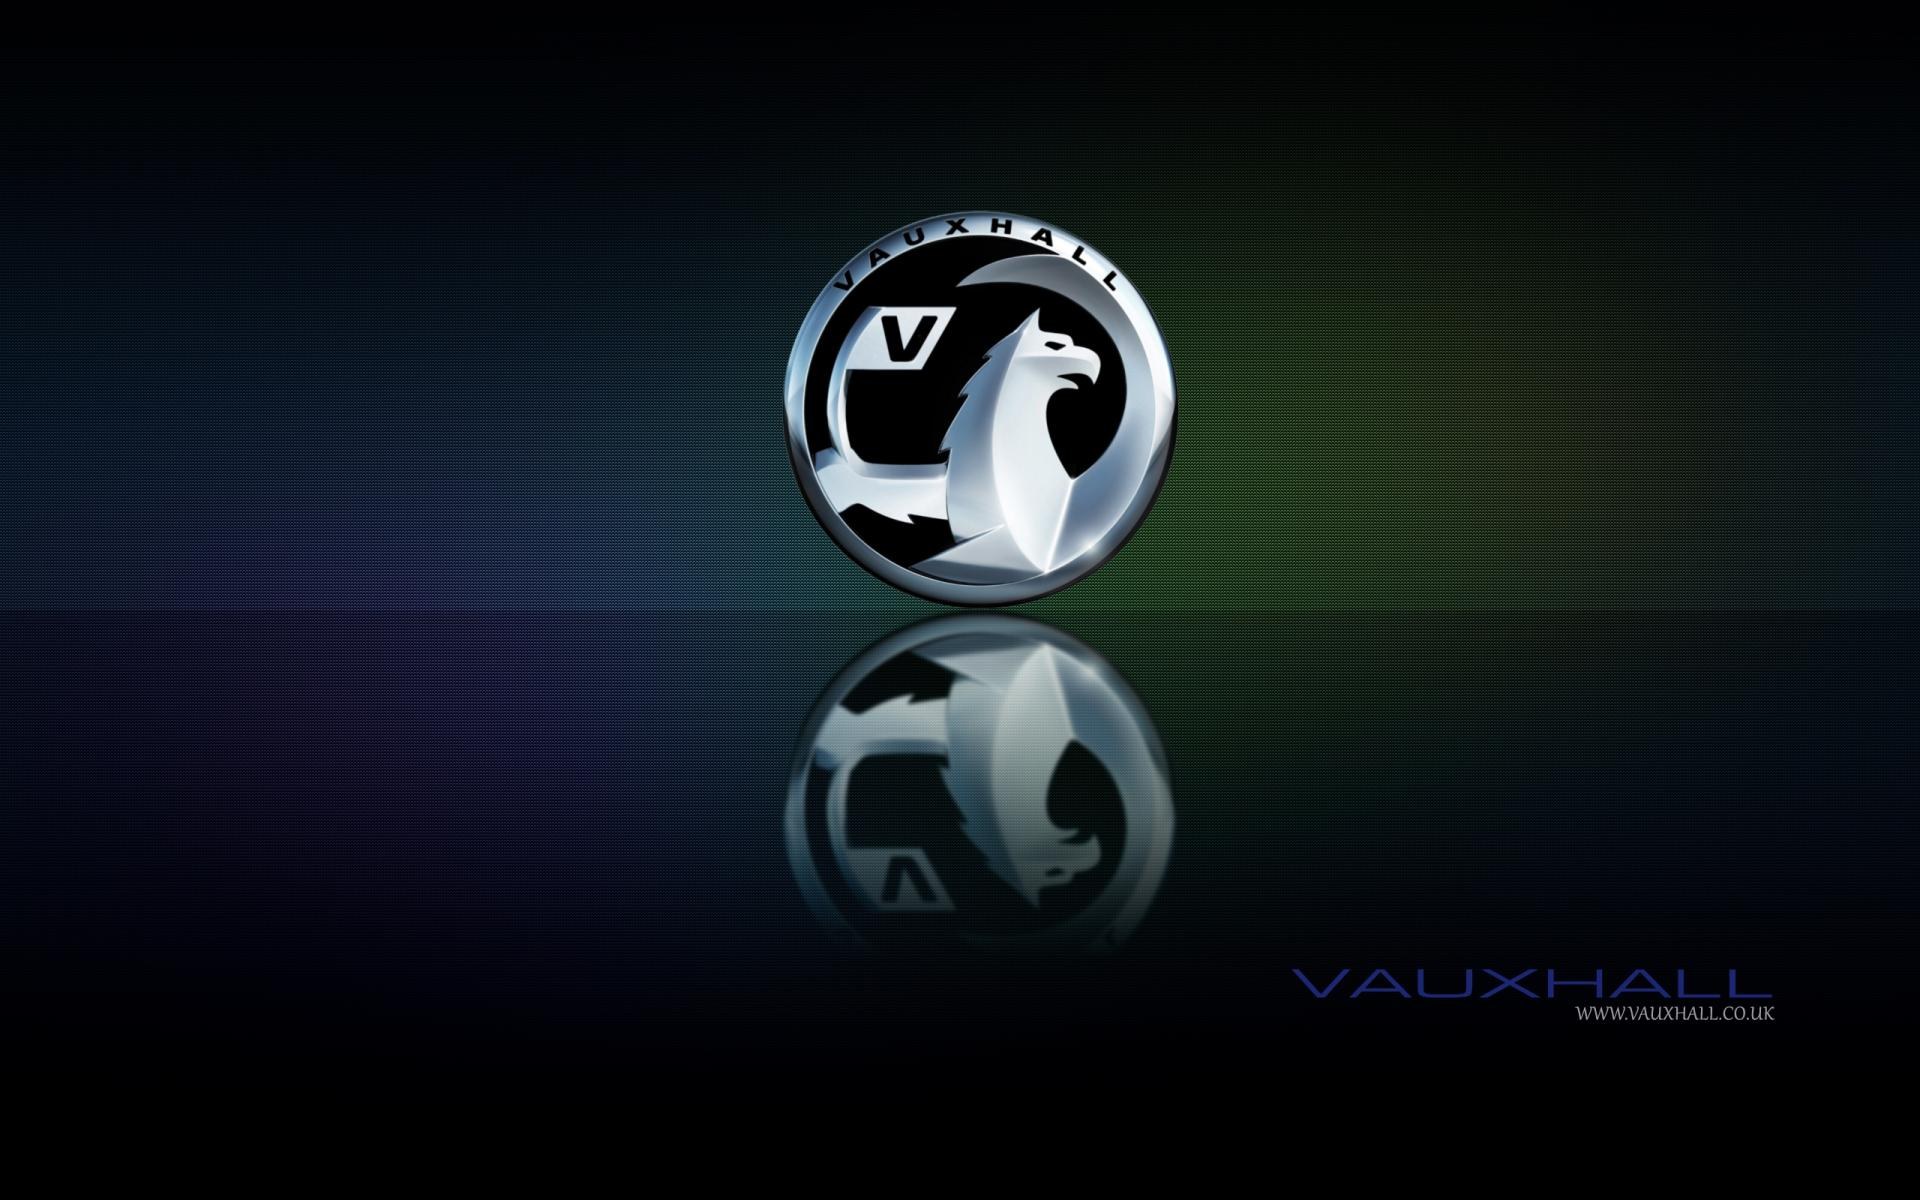 1920x1200 - Vauxhall Wallpapers 19